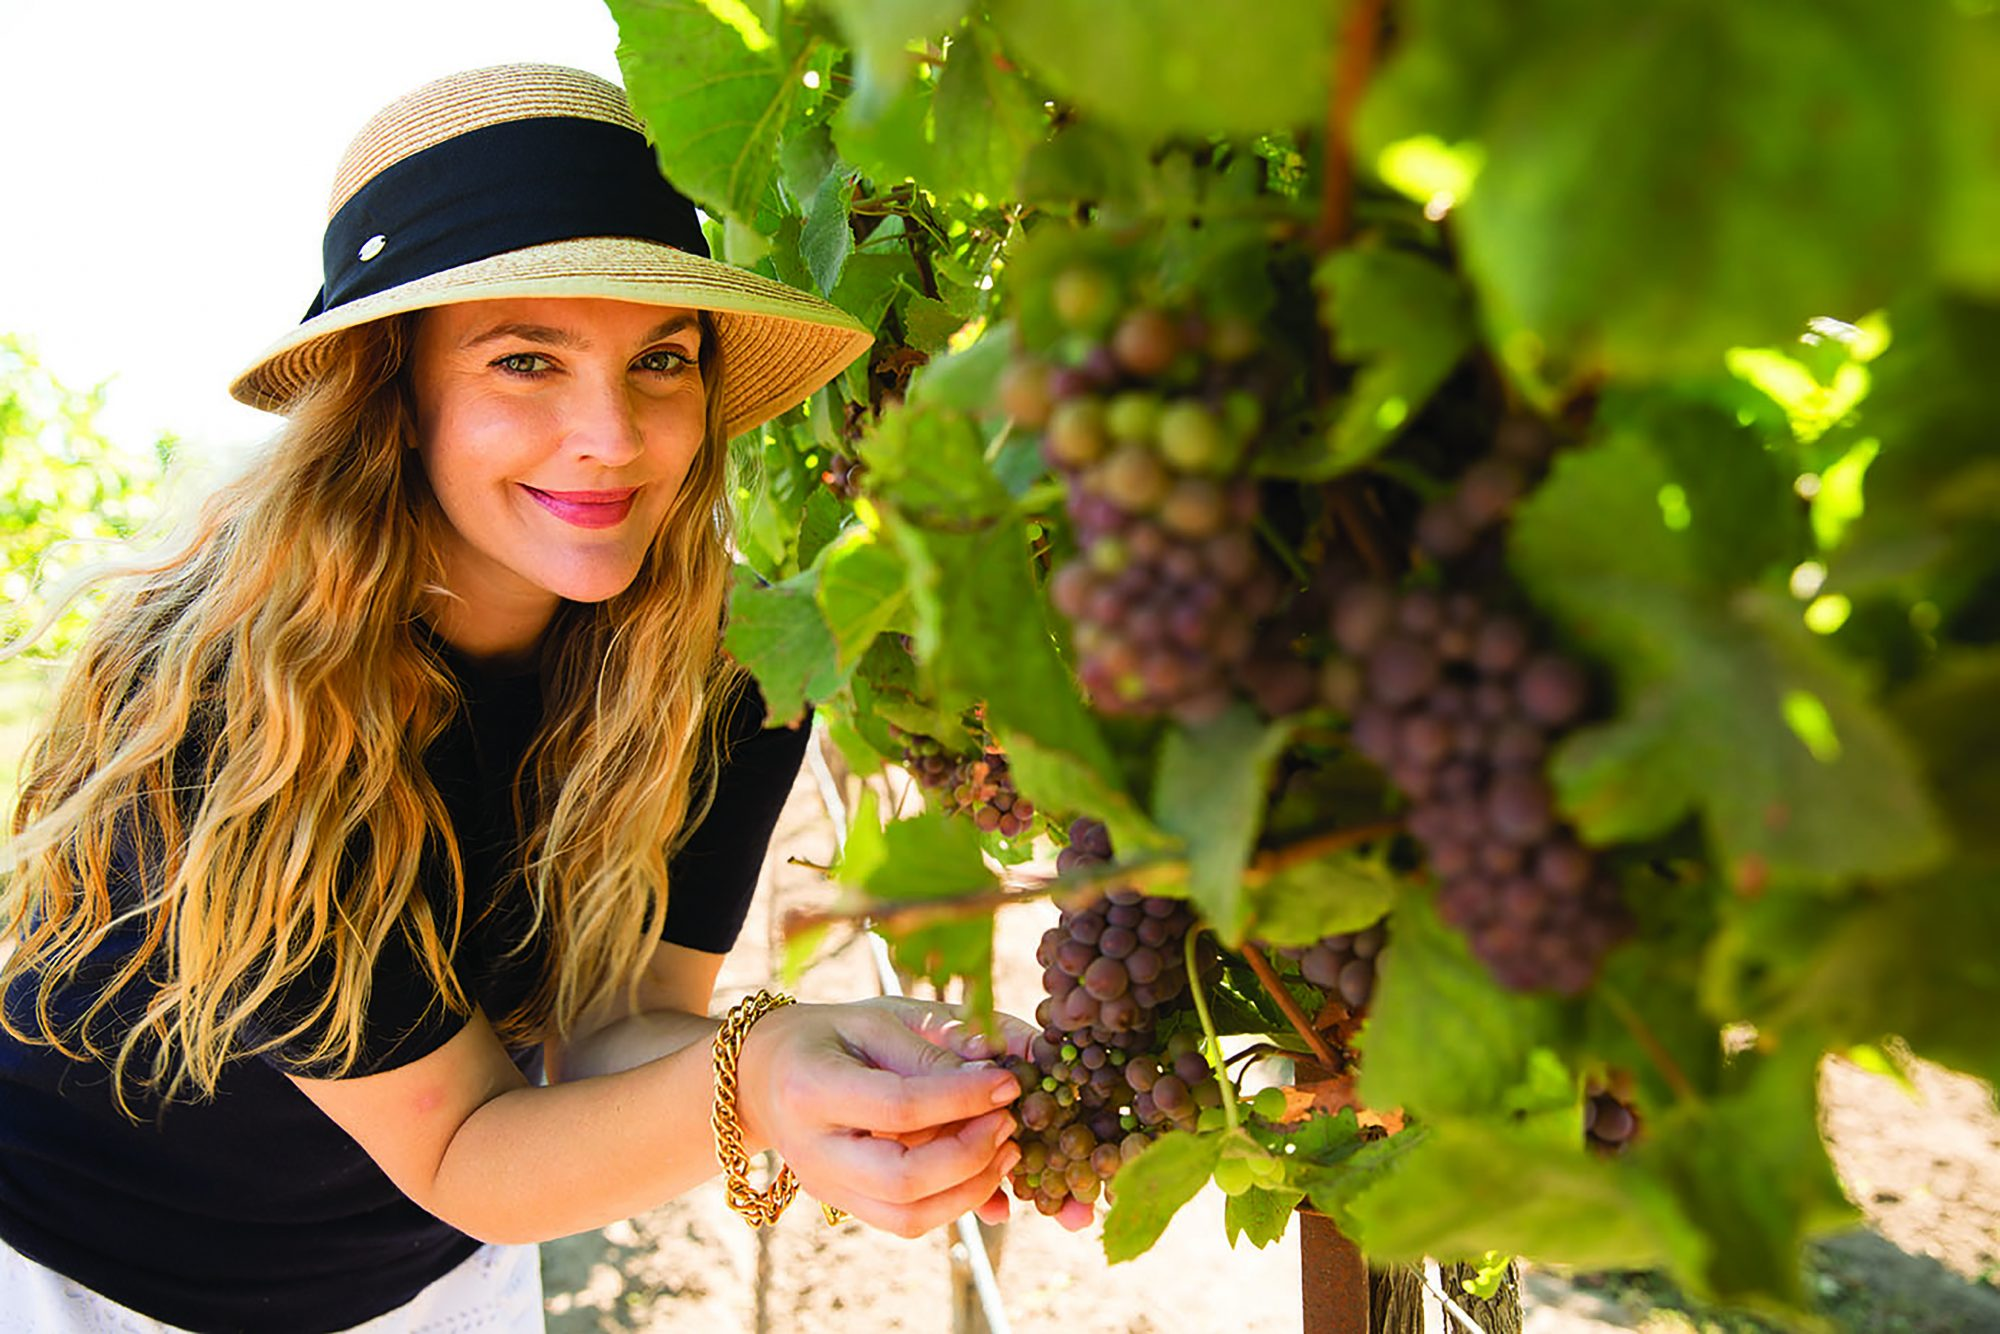 These Are the Top 10 Celebrity Wineries, According to Vivino